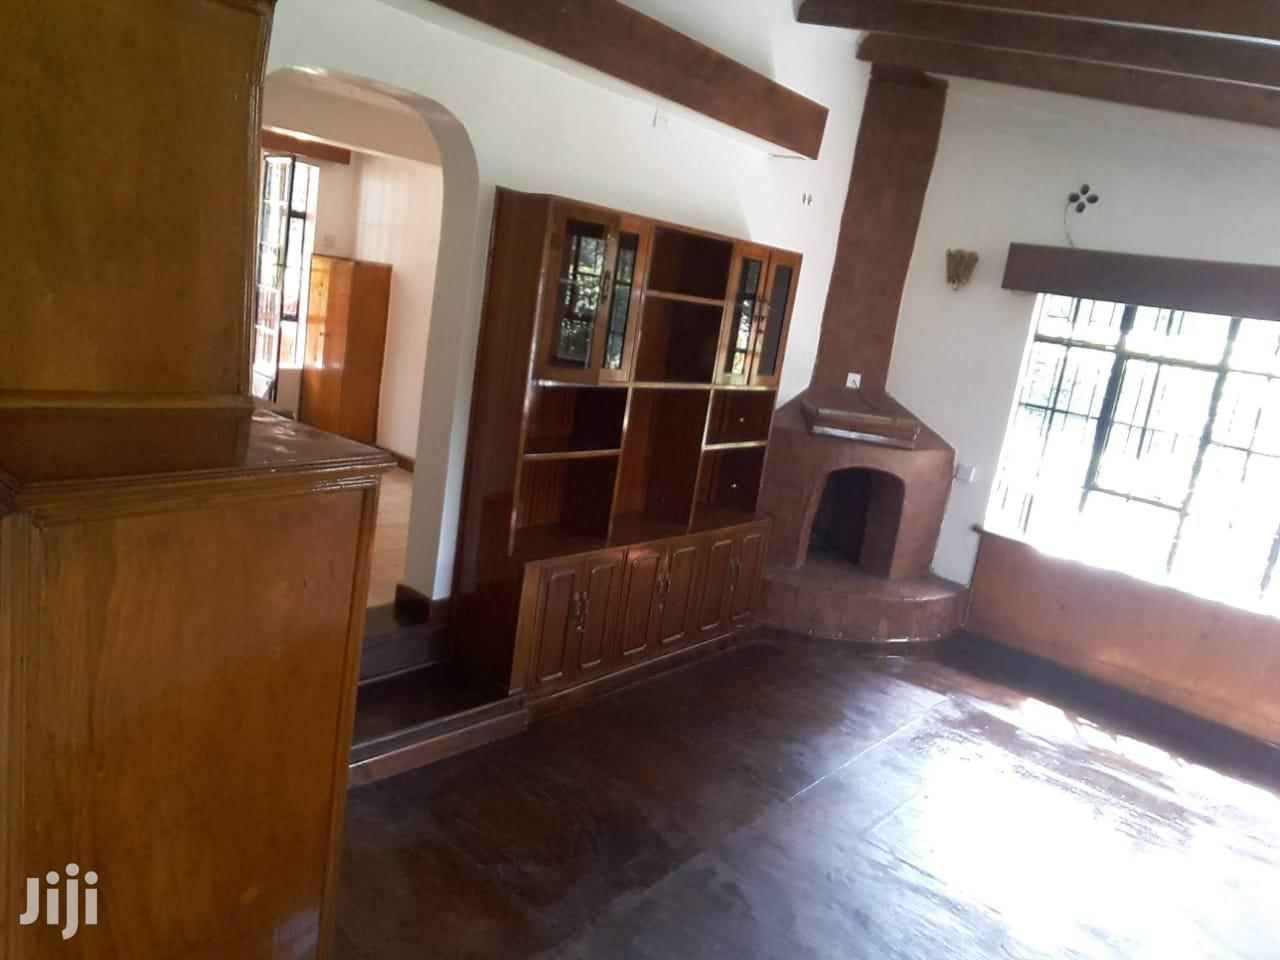 3 Bedroom House With an SQ to Let in Karen | Houses & Apartments For Rent for sale in Hardy, Karen, Kenya